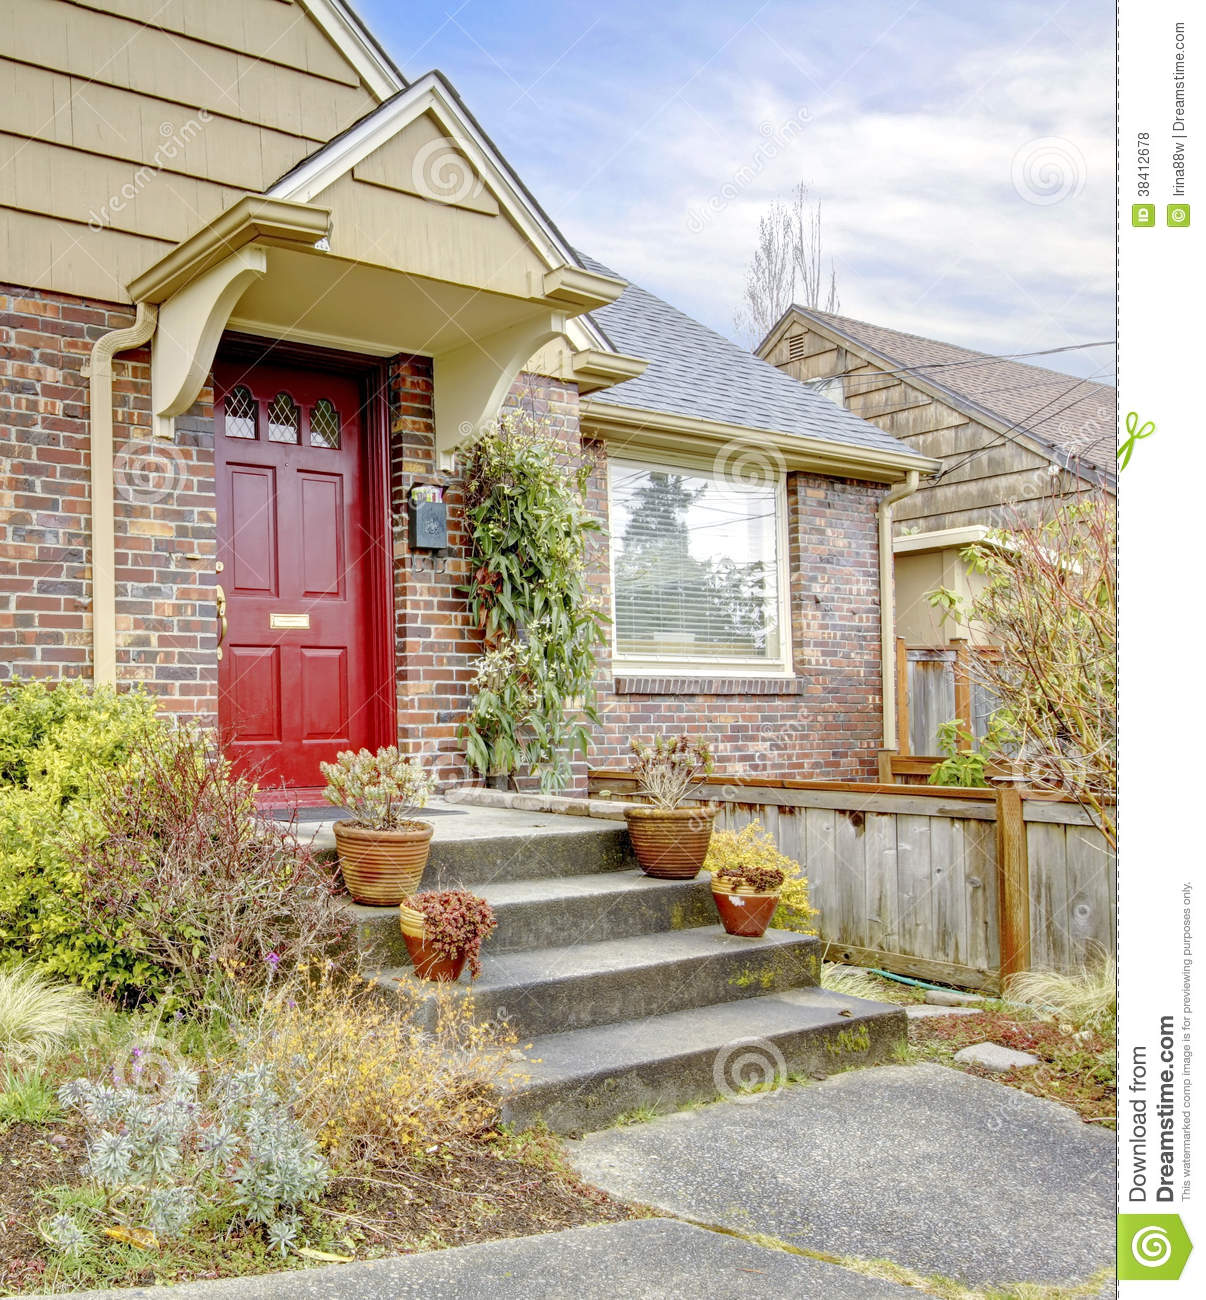 Beautiful Home Entrances Beautiful Brick House With Red Entrance Door Royalty Free